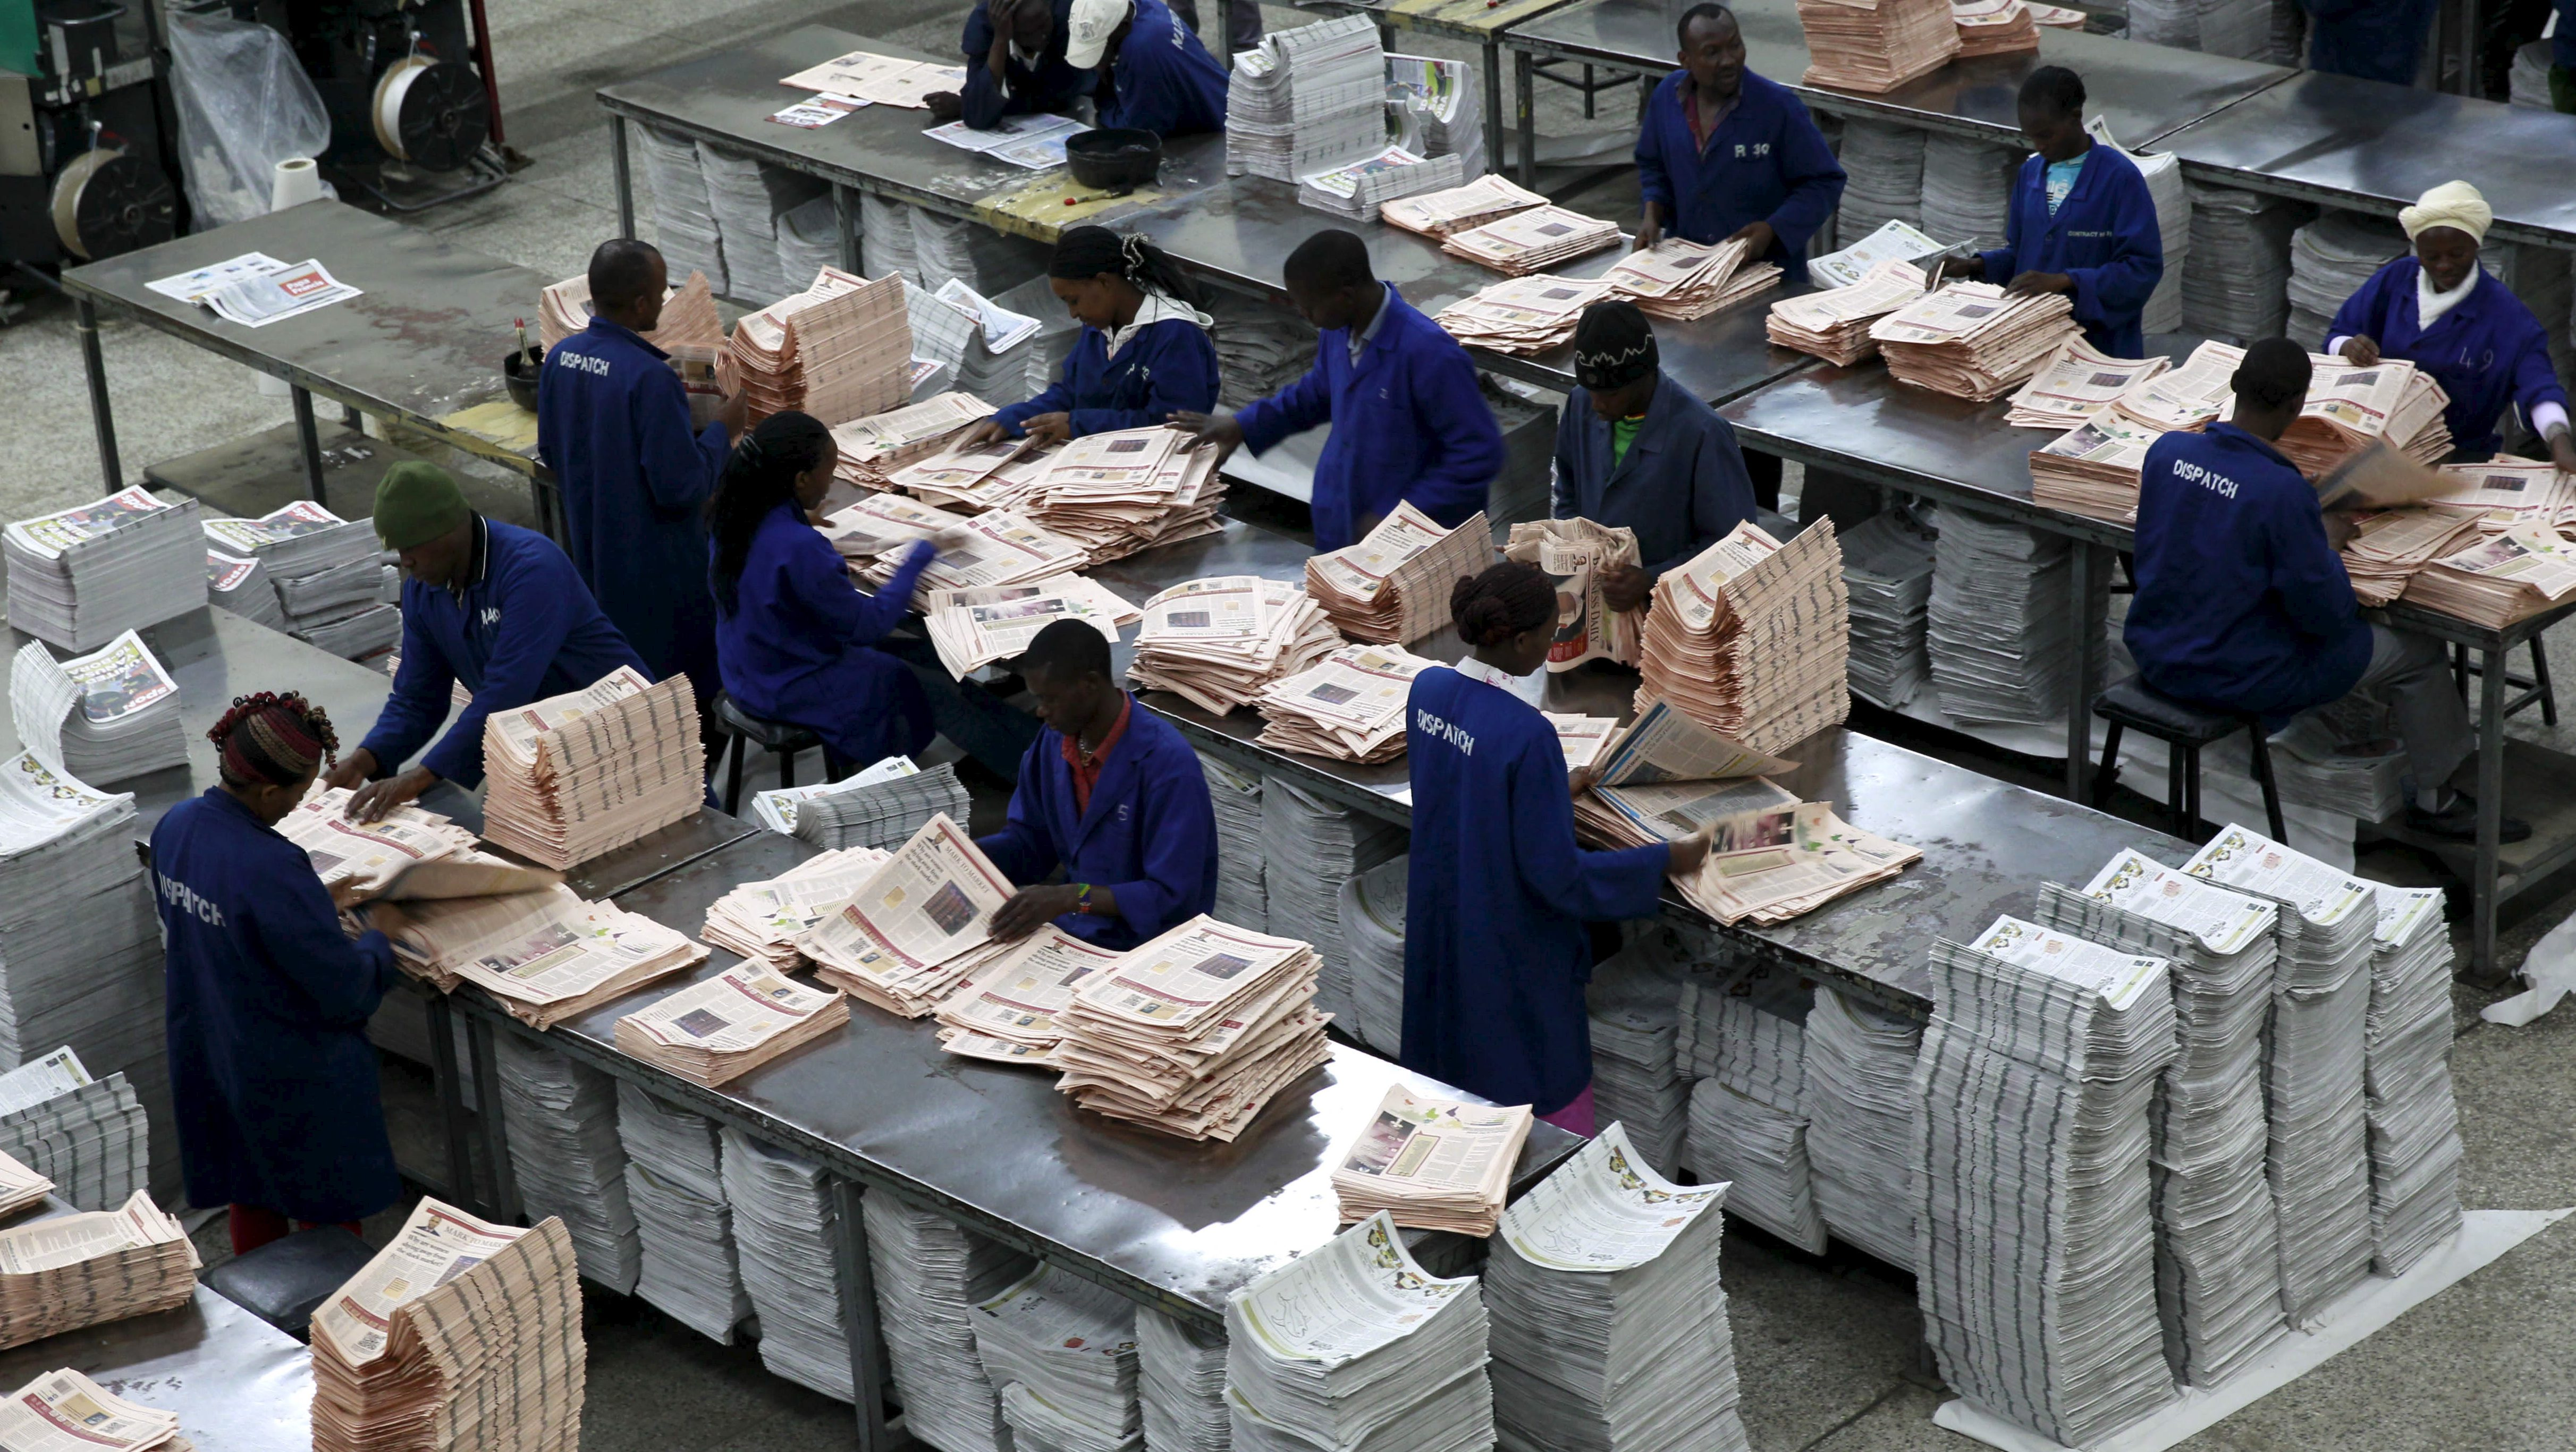 Workers arrange copies of the Business Daily newspaper produced by the Nation Media Group at a printing press plant on the outskirts of Kenya's capital Nairobi, November 24, 2015. Kenya's Nation Media Group, the biggest newspaper publisher in East Africa, is testing a new press to meet rising demand for its titles on a continent where print media is still growing, its chief executive said. Picture taken November 24, 2015. REUTERS/Thomas Mukoya - RTX1VQ3I